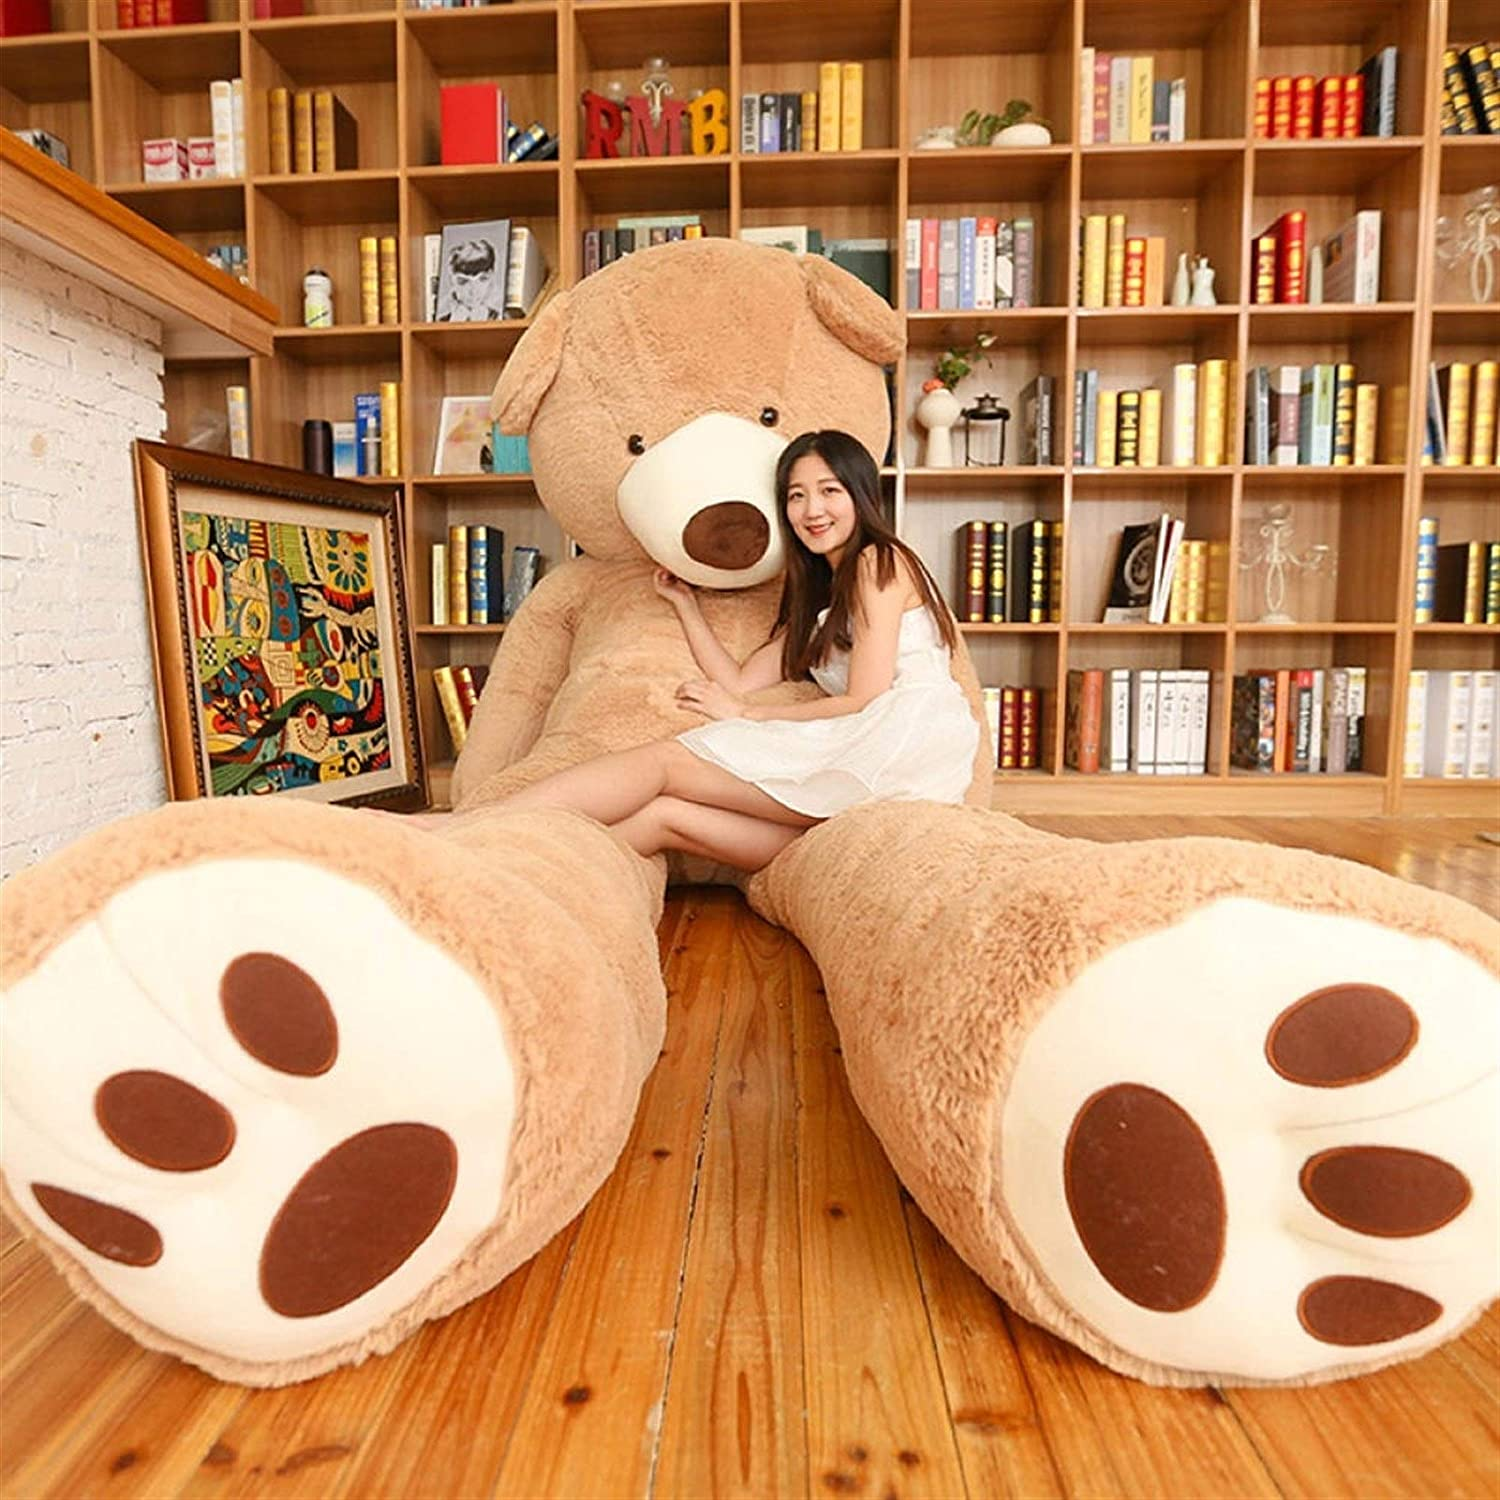 Wxizhu Plushies Giant Big Bear Toy Plush Animer and price Max 51% OFF revision Stitched Skin Unfilled